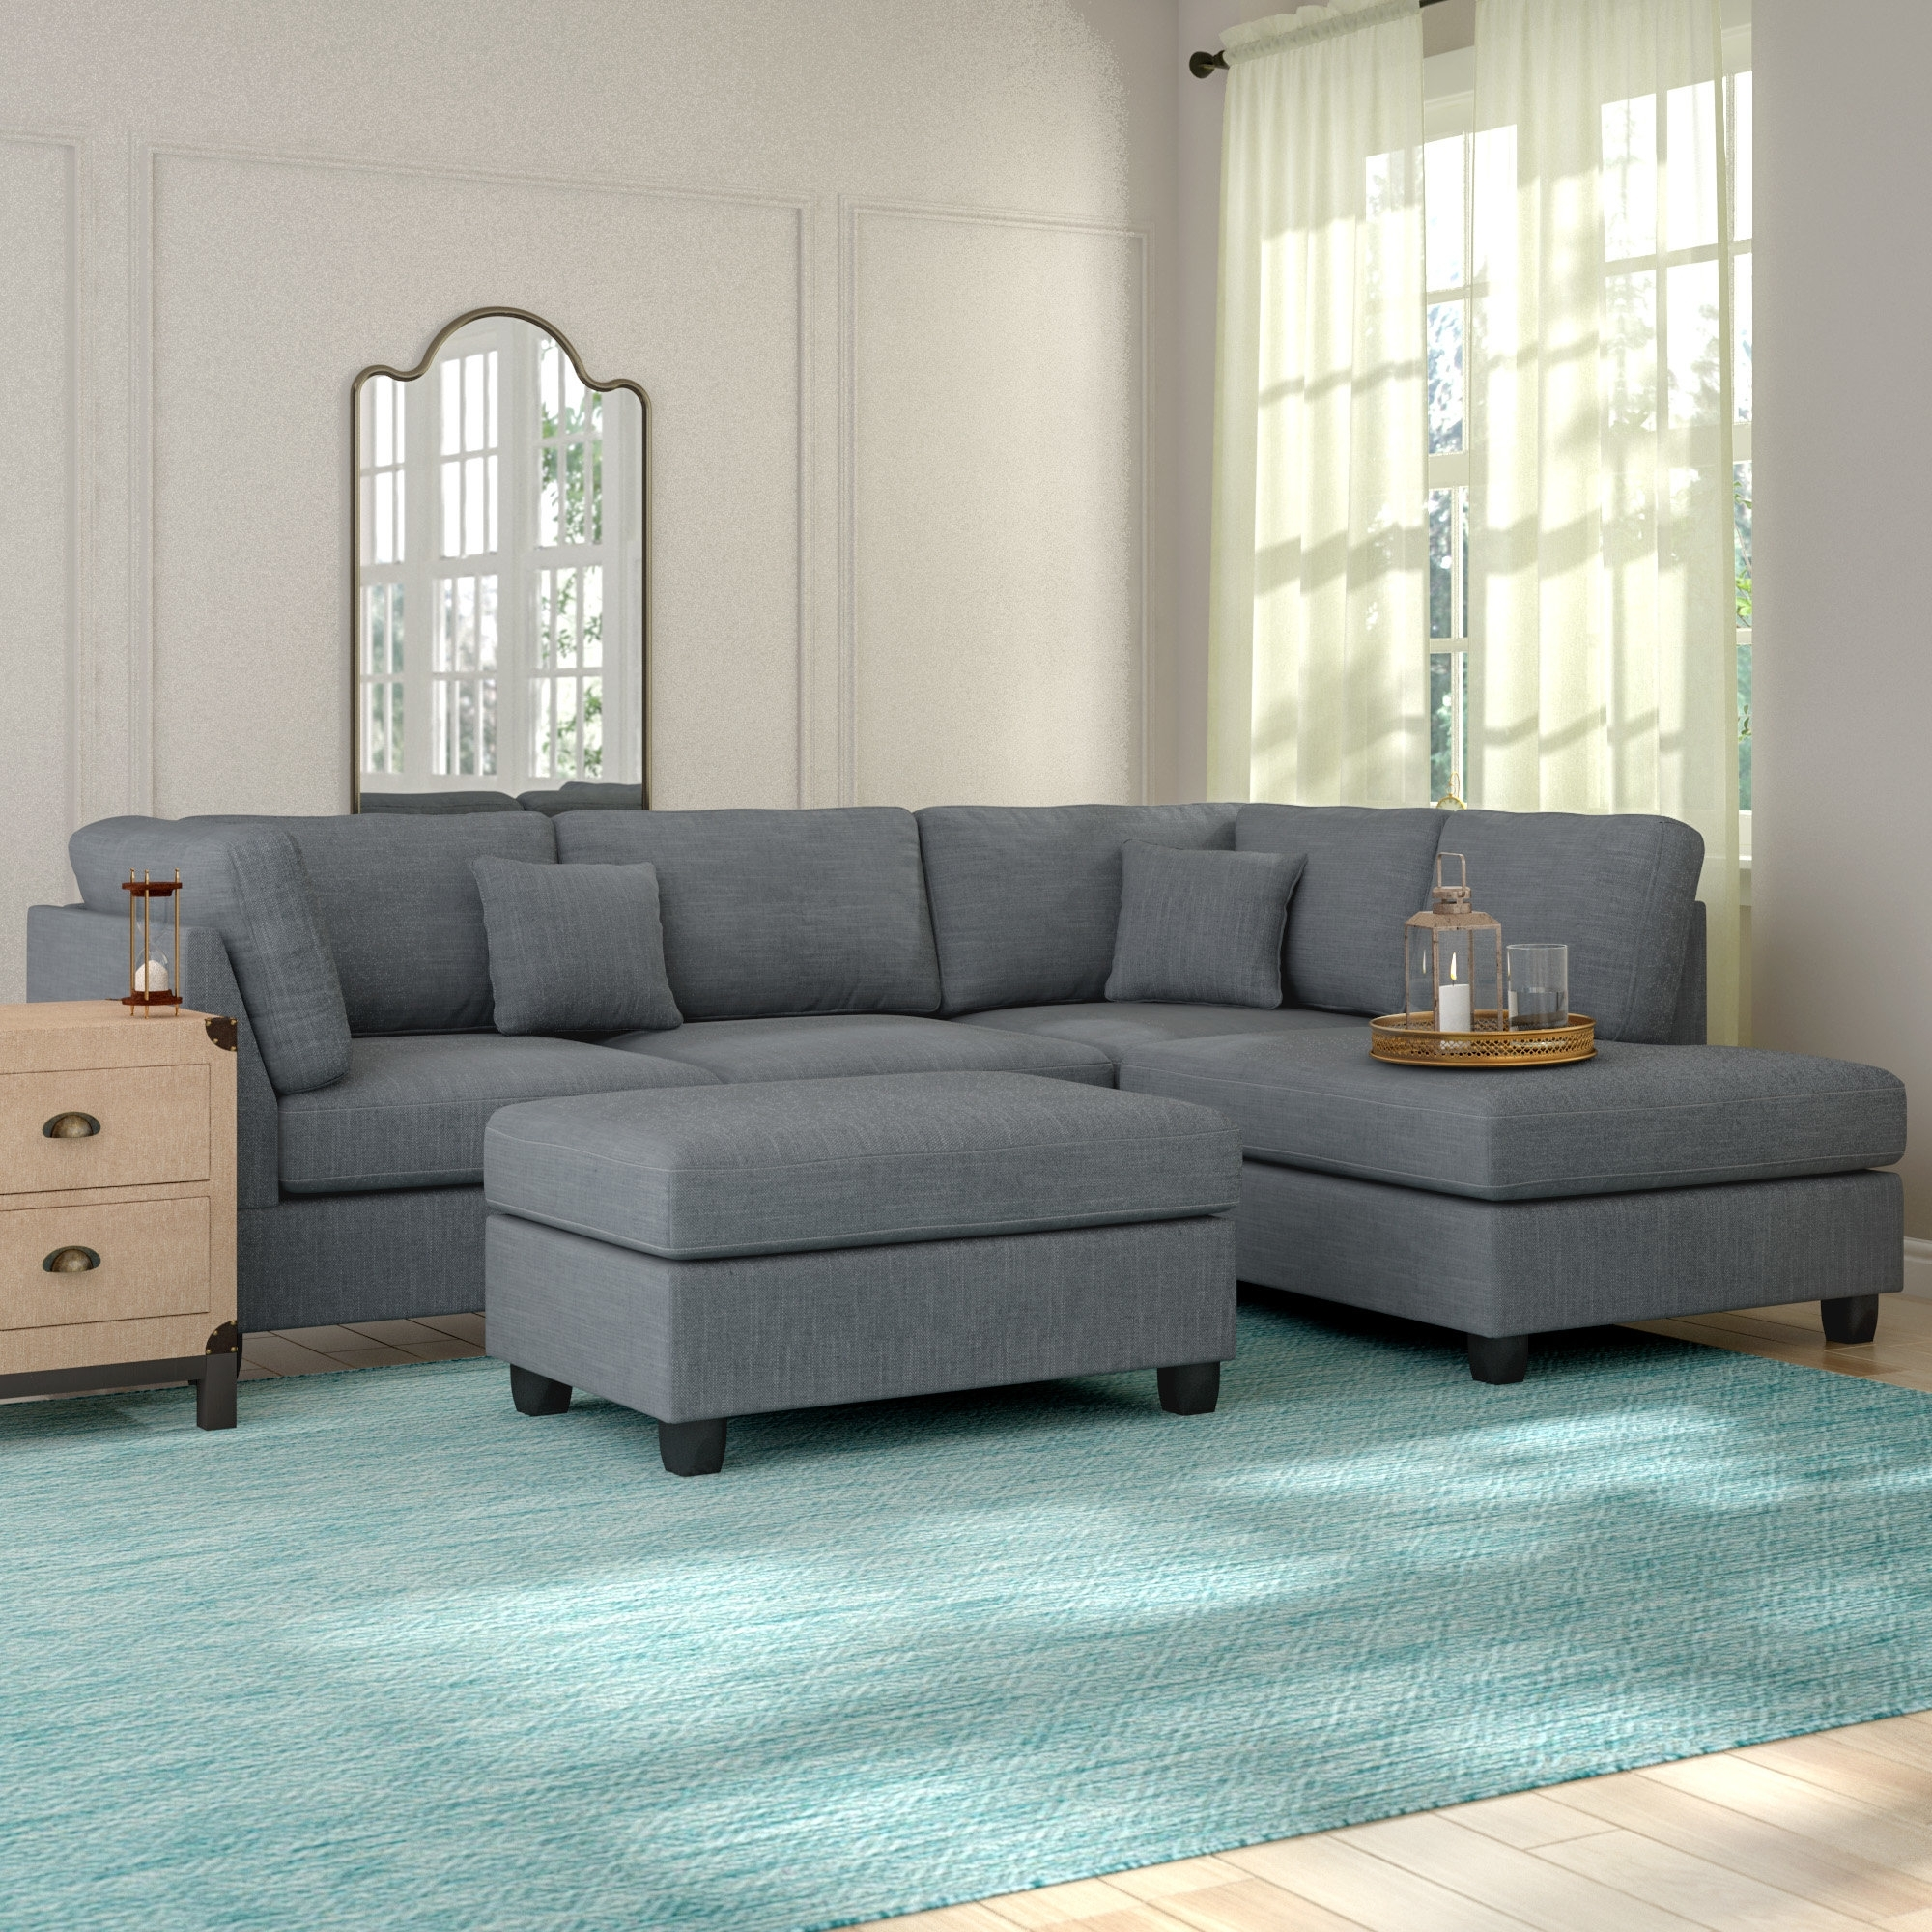 Gray Sectional Couch You'll Love (Gallery 6 of 20)